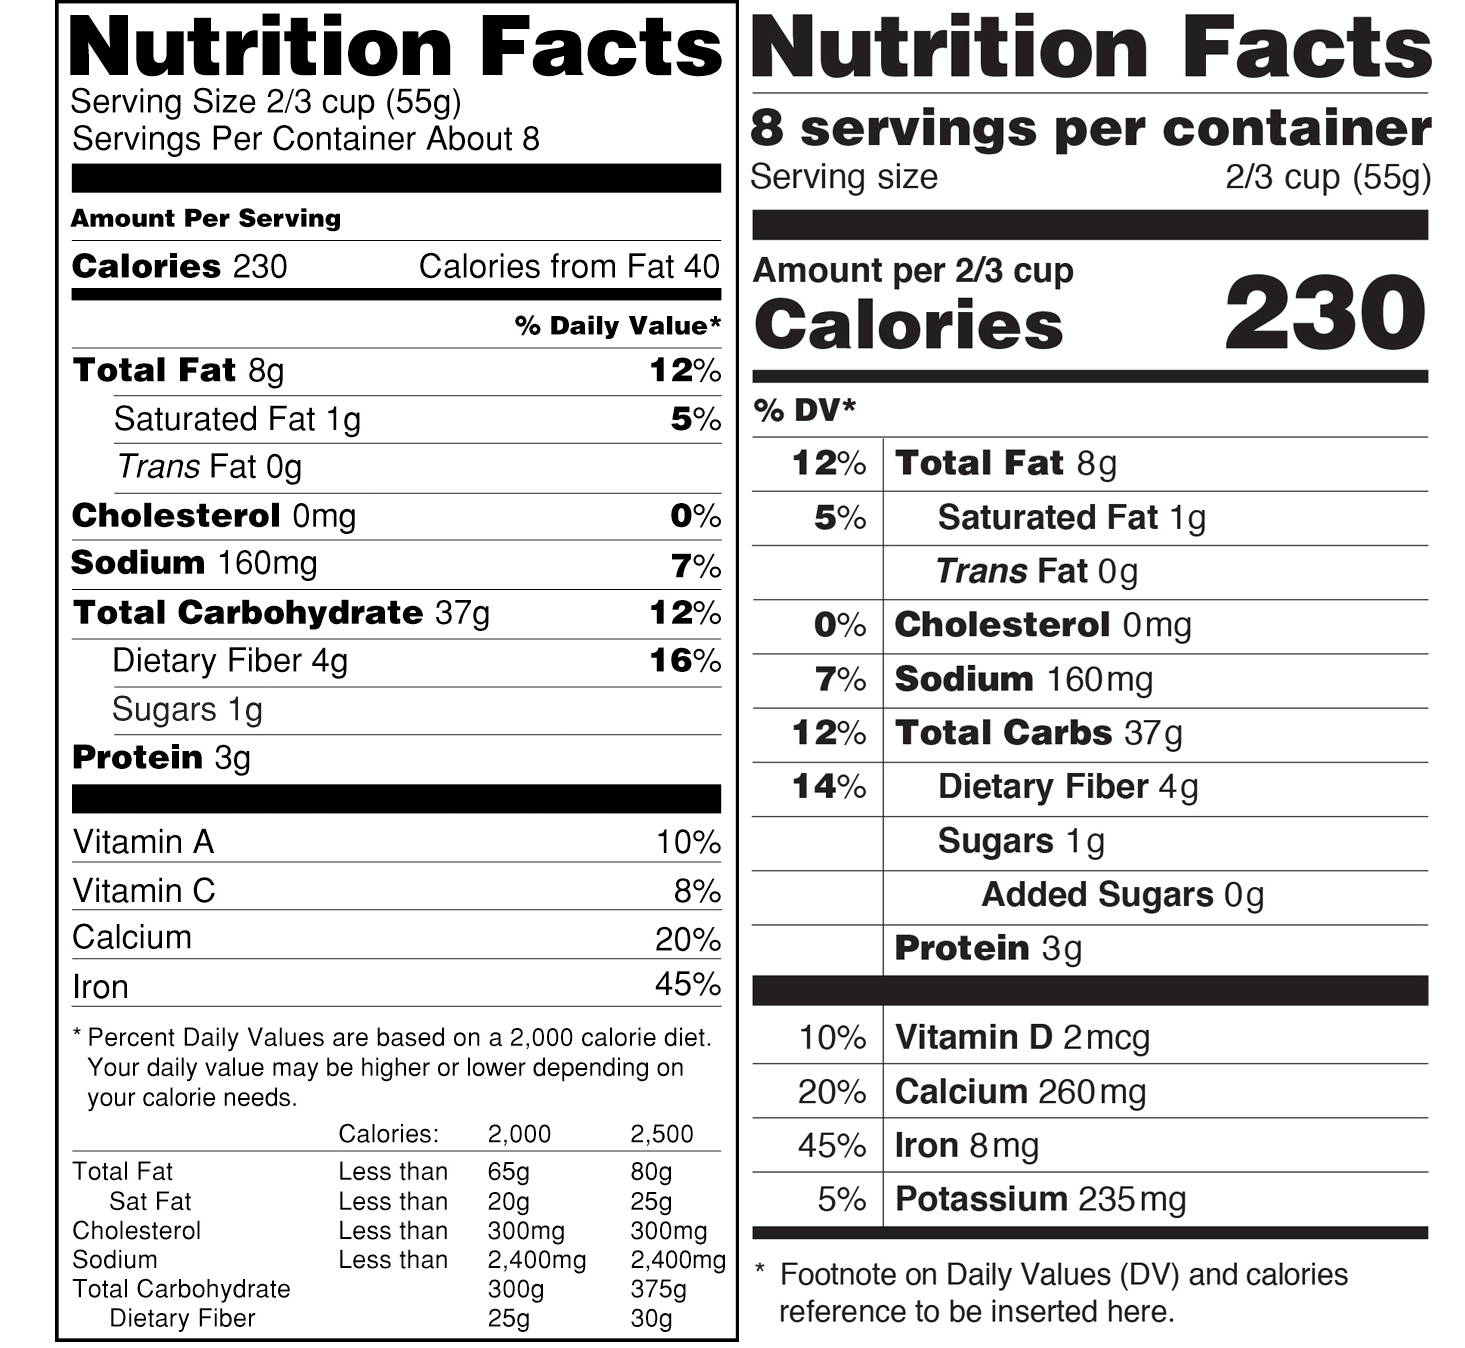 Nutrition Labels Get a (Much Needed) Makeover advise